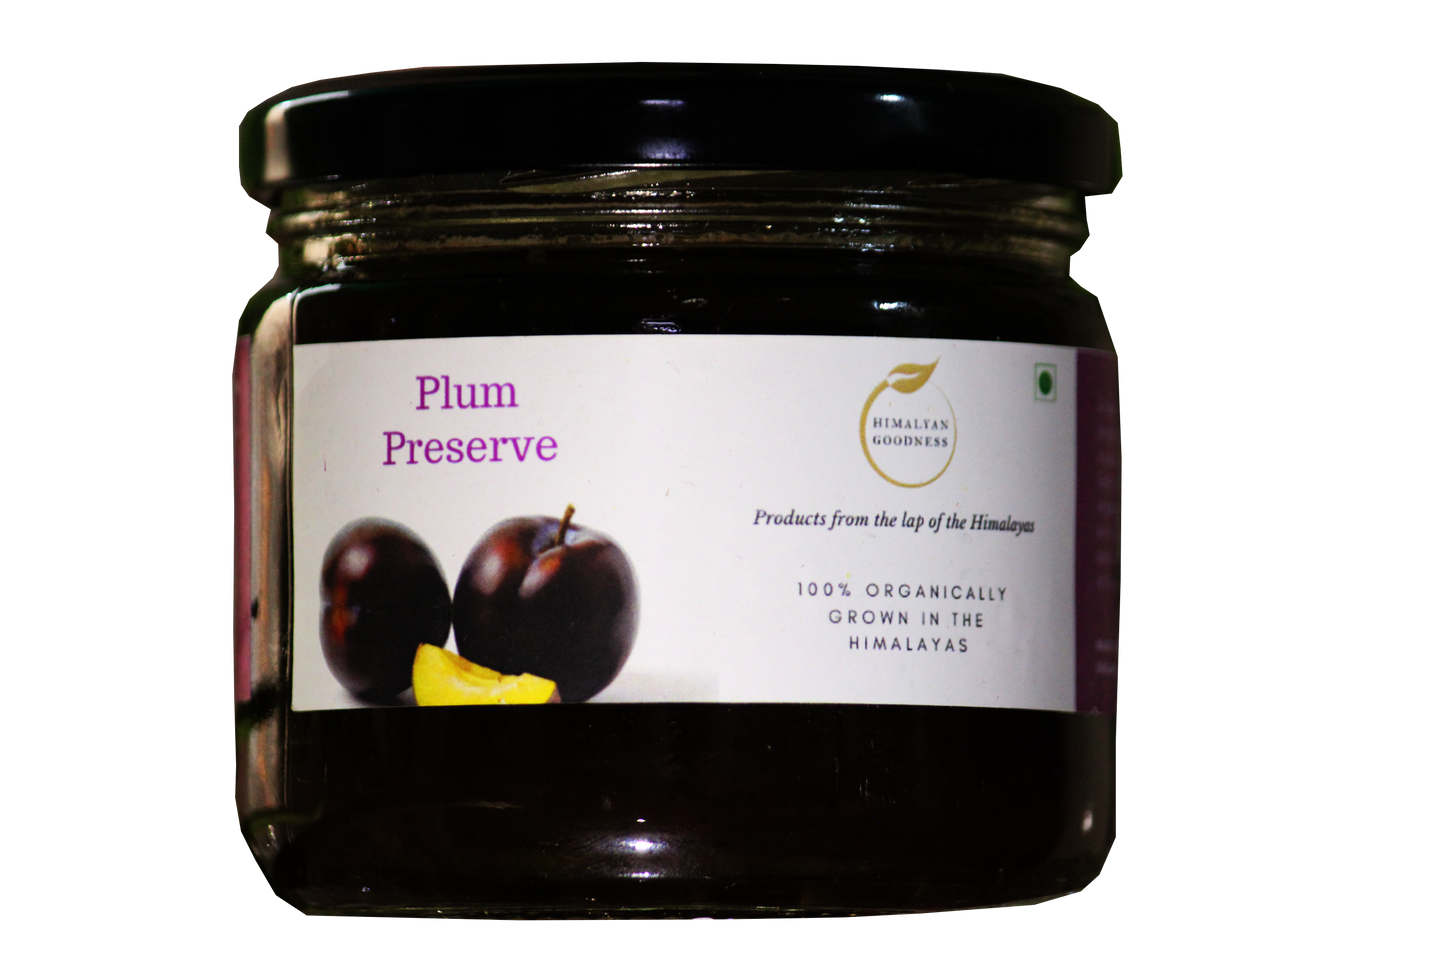 HG Organic Plum Preserve (350gm) - Natural | High on Fruit and Low on Sugar | Favorite with Kids